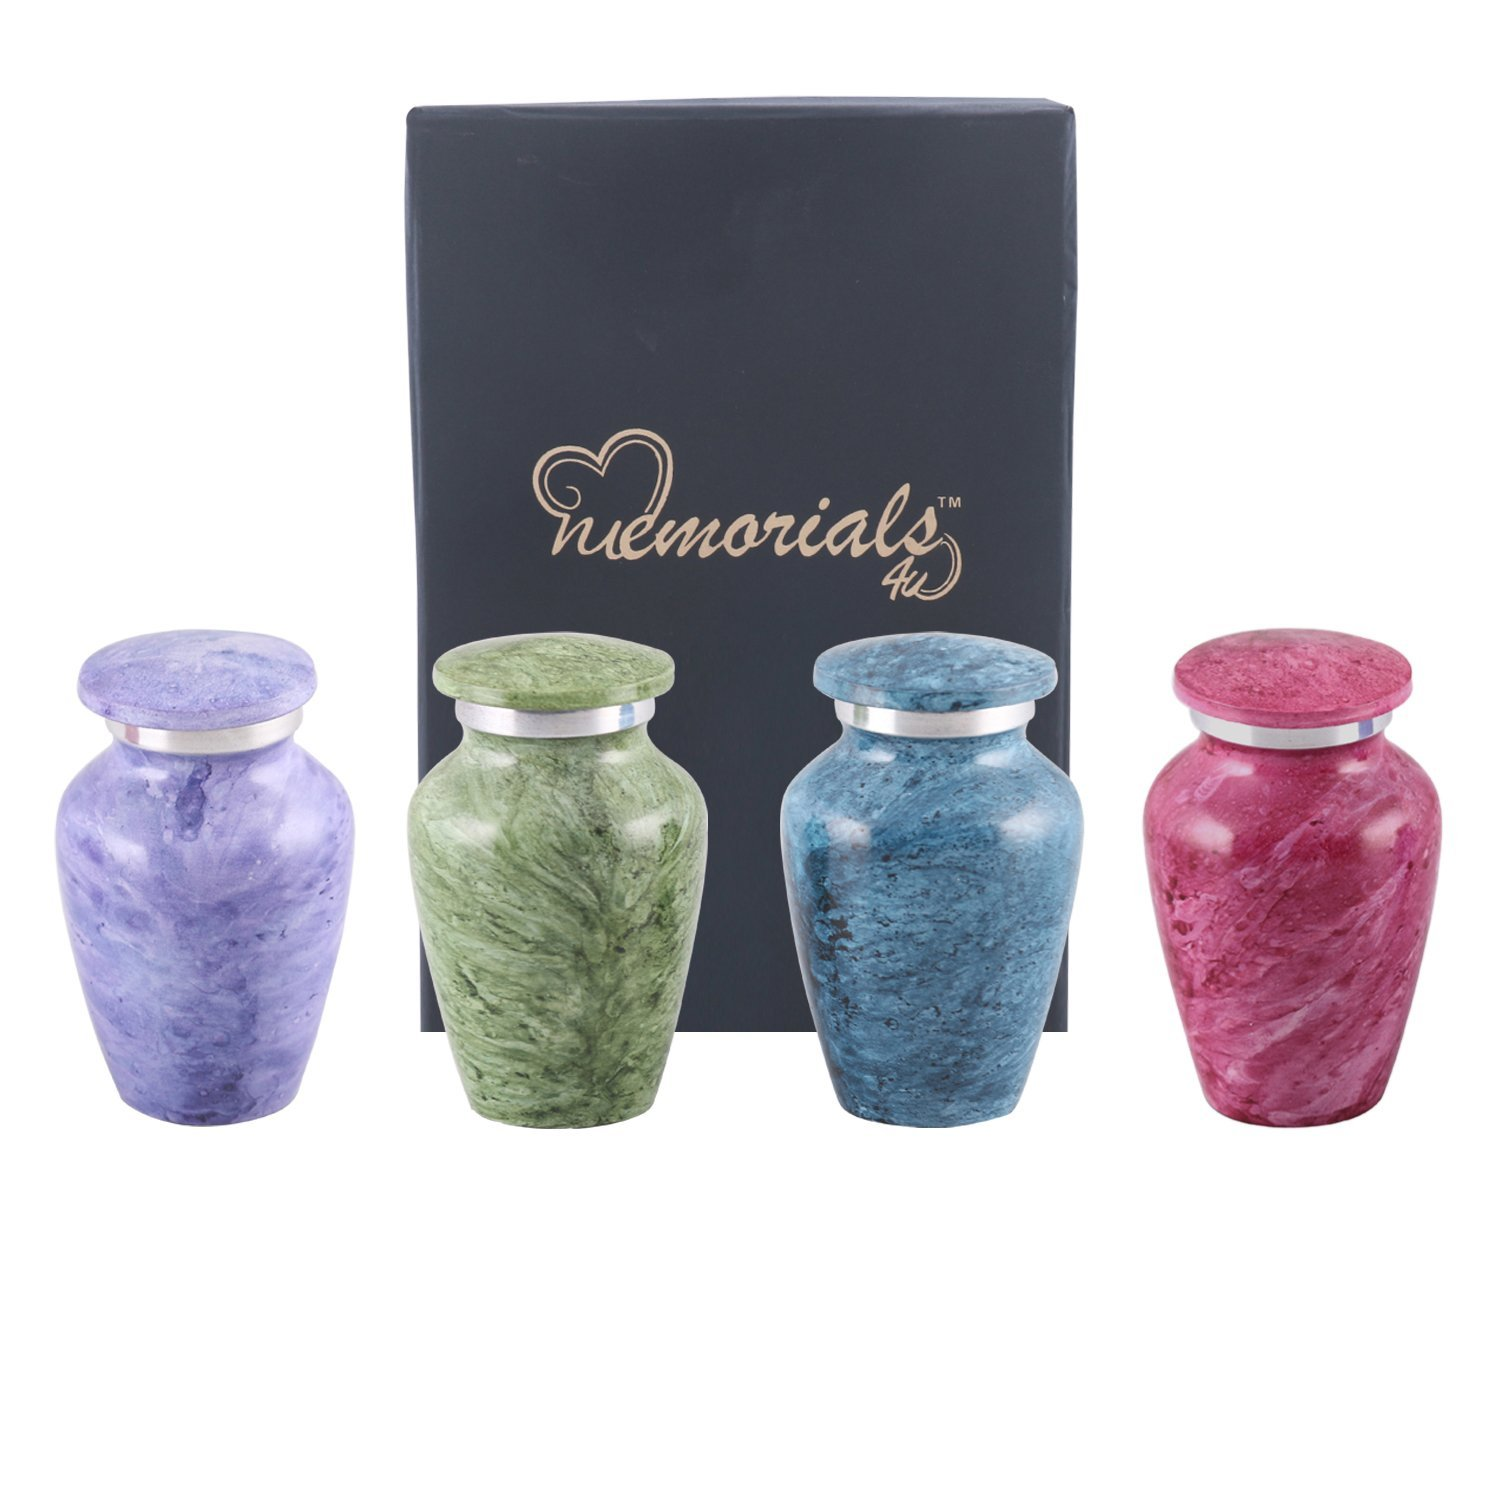 Shades of Marble Classic Keepsake Urns Set of 4 - Token Urns - Keepsake Urn Set - Handcrafted and Affordable Memorial Mini Urns for Ashes - Best Deal